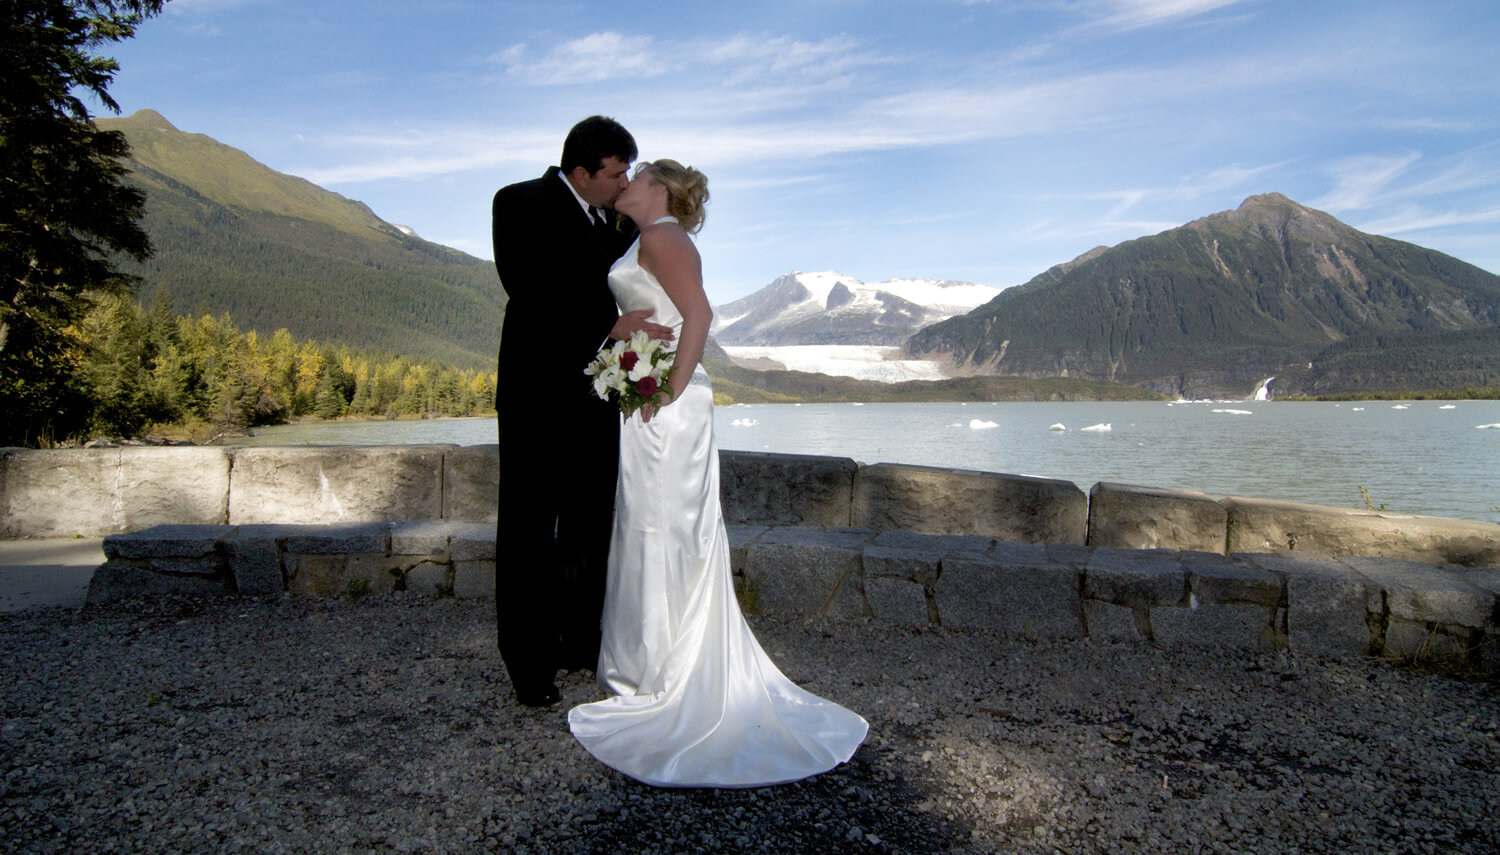 First kiss alongside Mendenhall Lake with a background of lightly clouded blue sky and Mendenhall Glacier